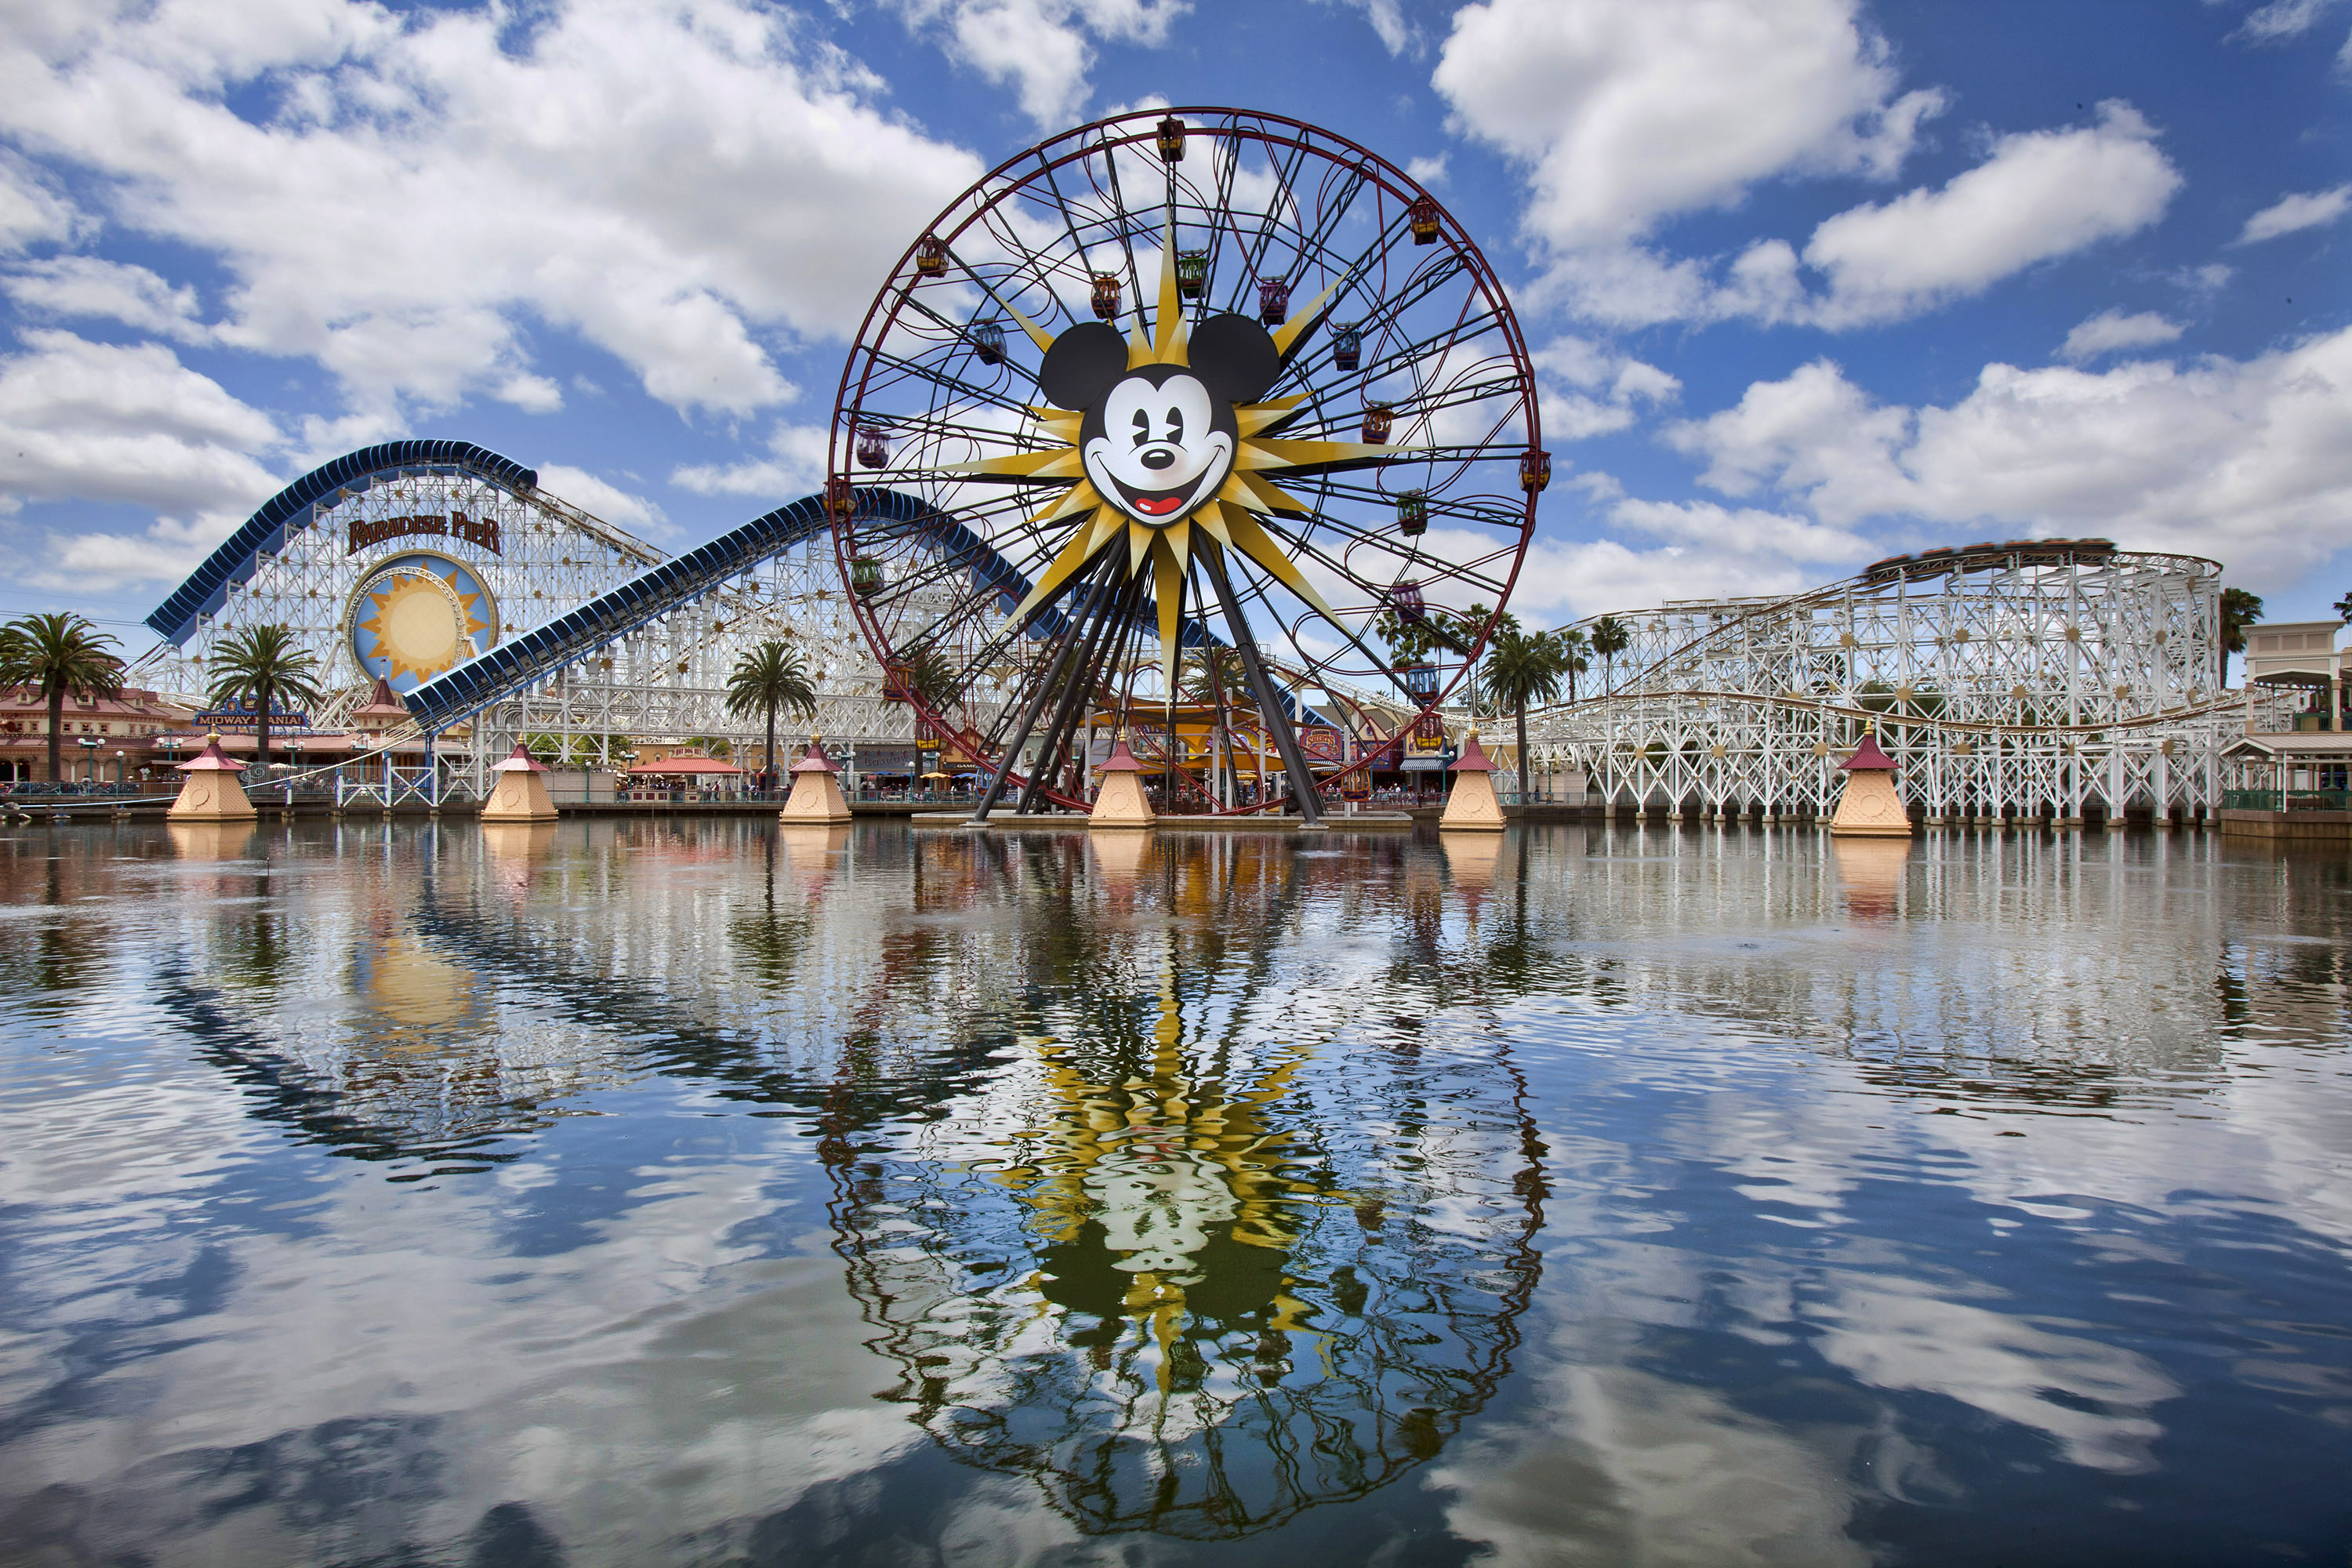 Vacation Planning Tips for the Disneyland Resort, a World-Class, Multi-Day Family Vacation Destination